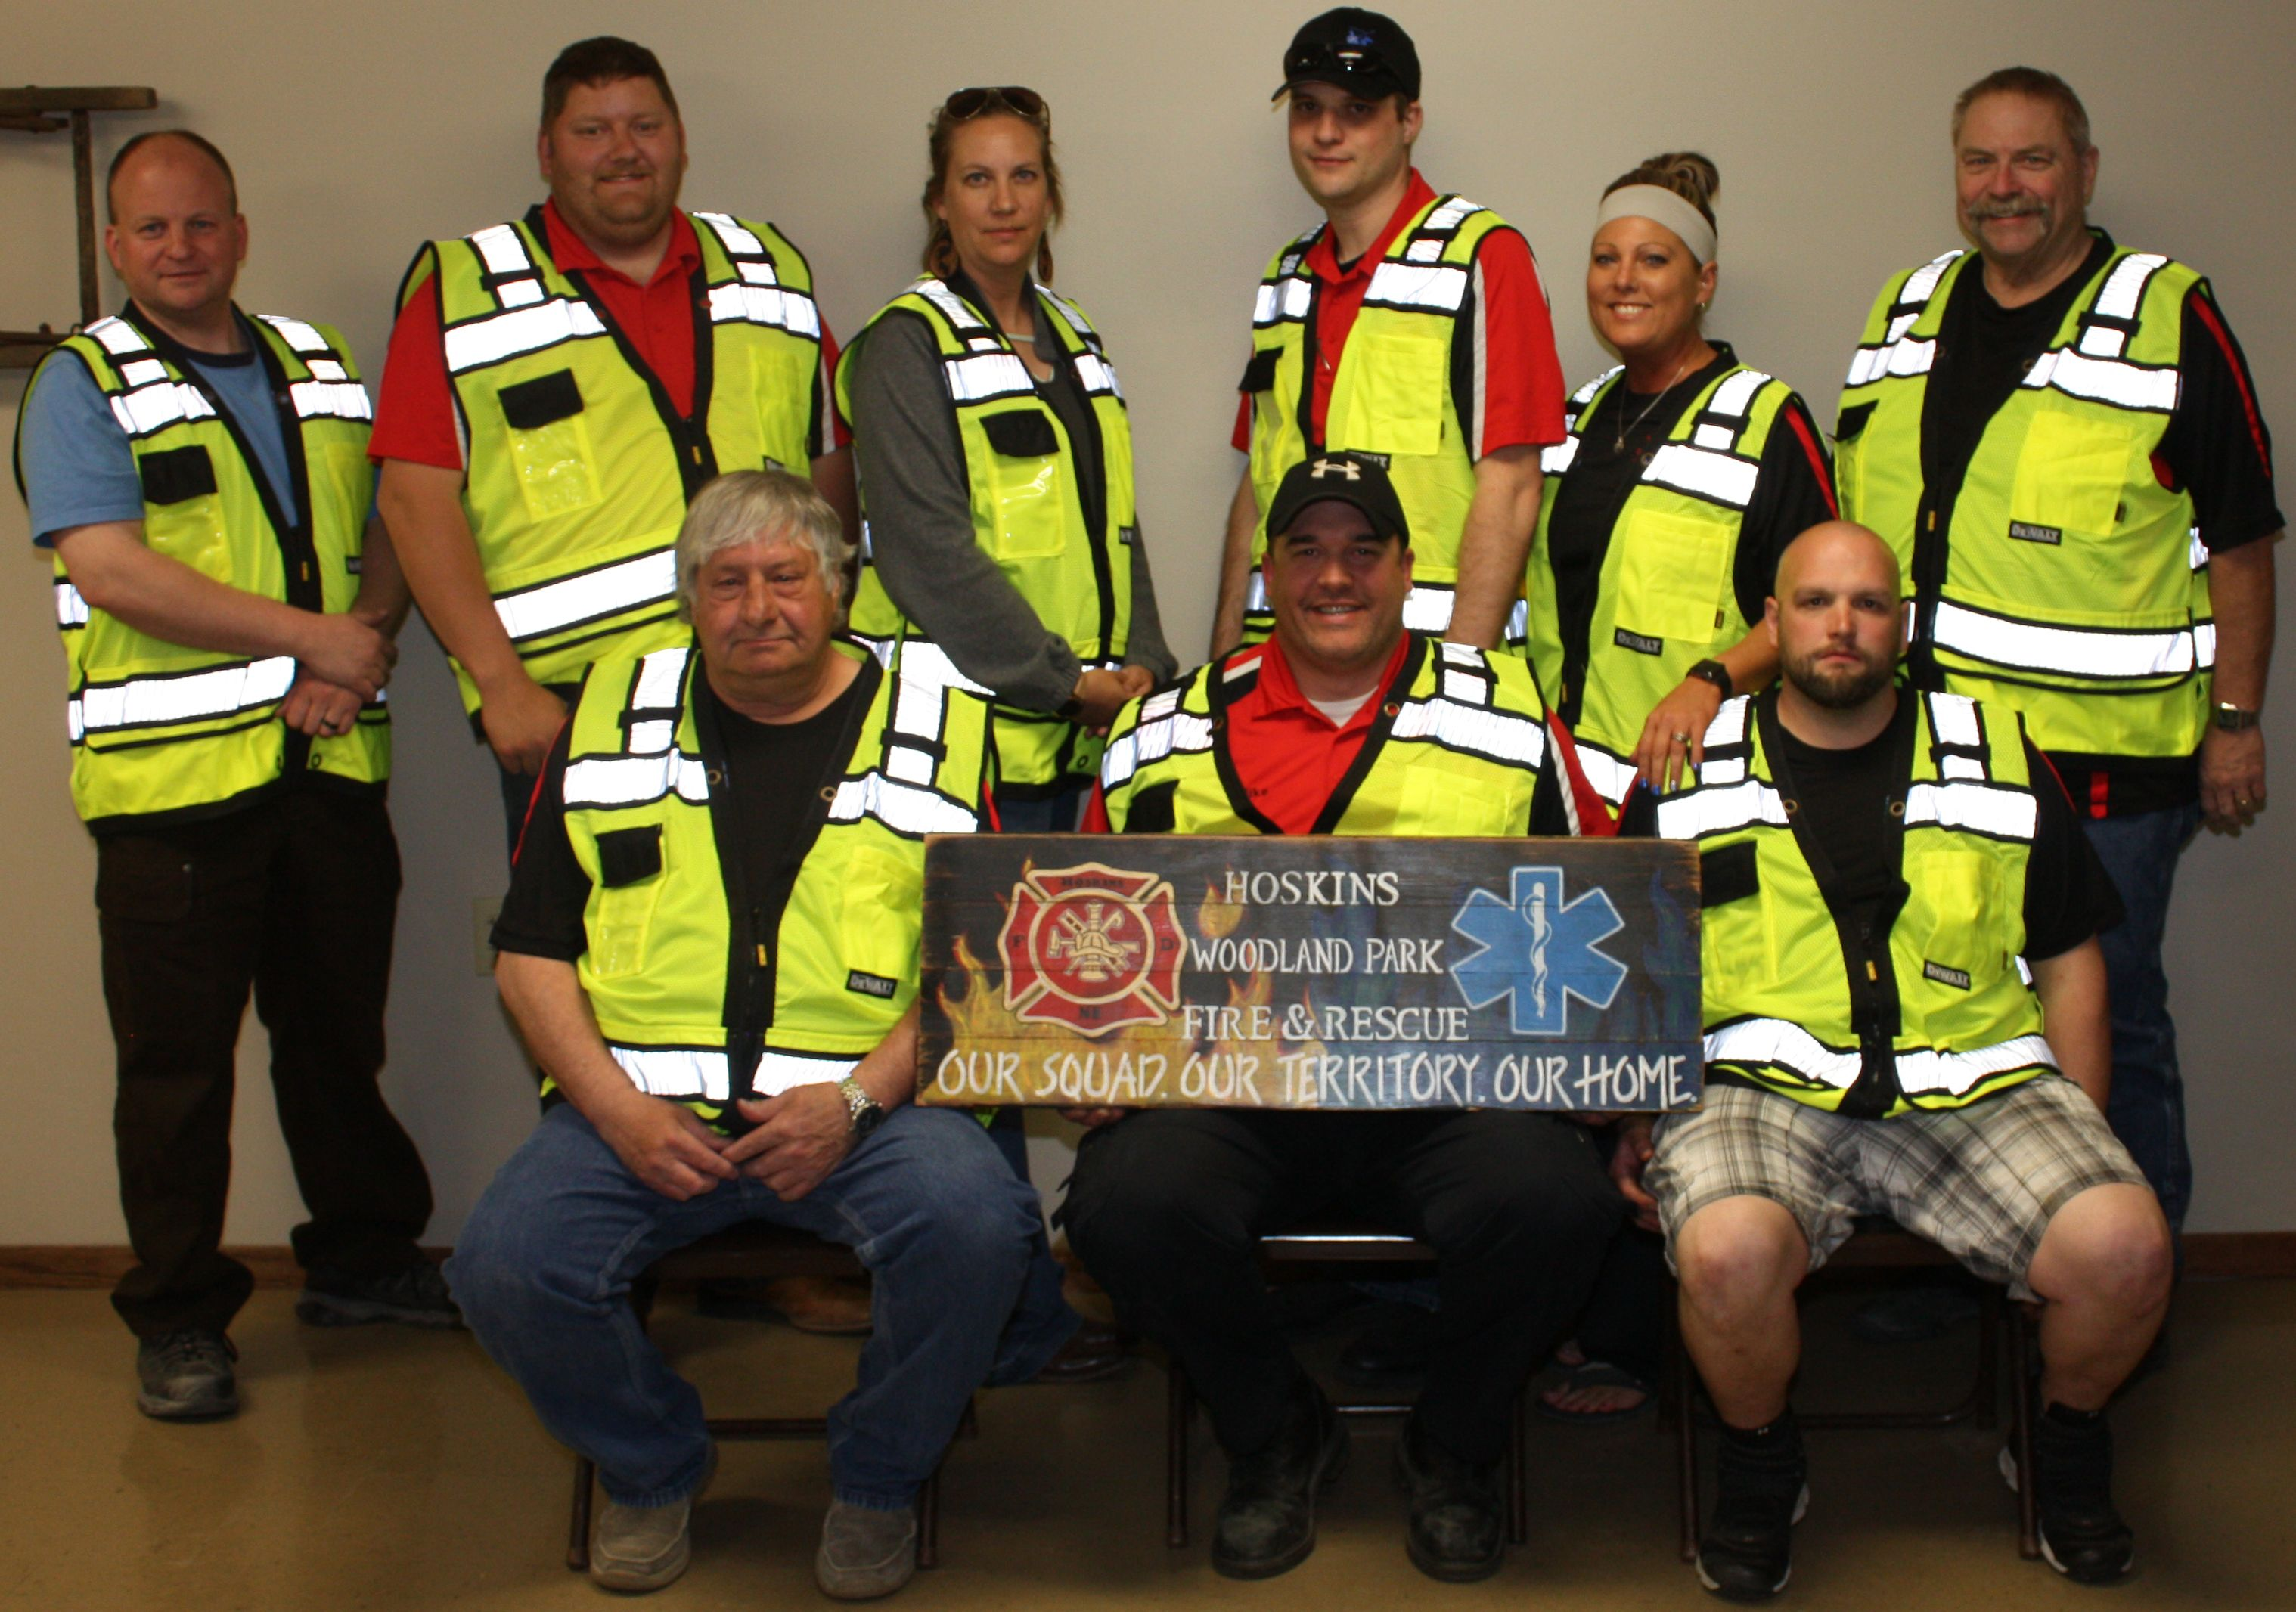 Hoskins Woodland Park Rescue Squad outfitted with new safety apparel